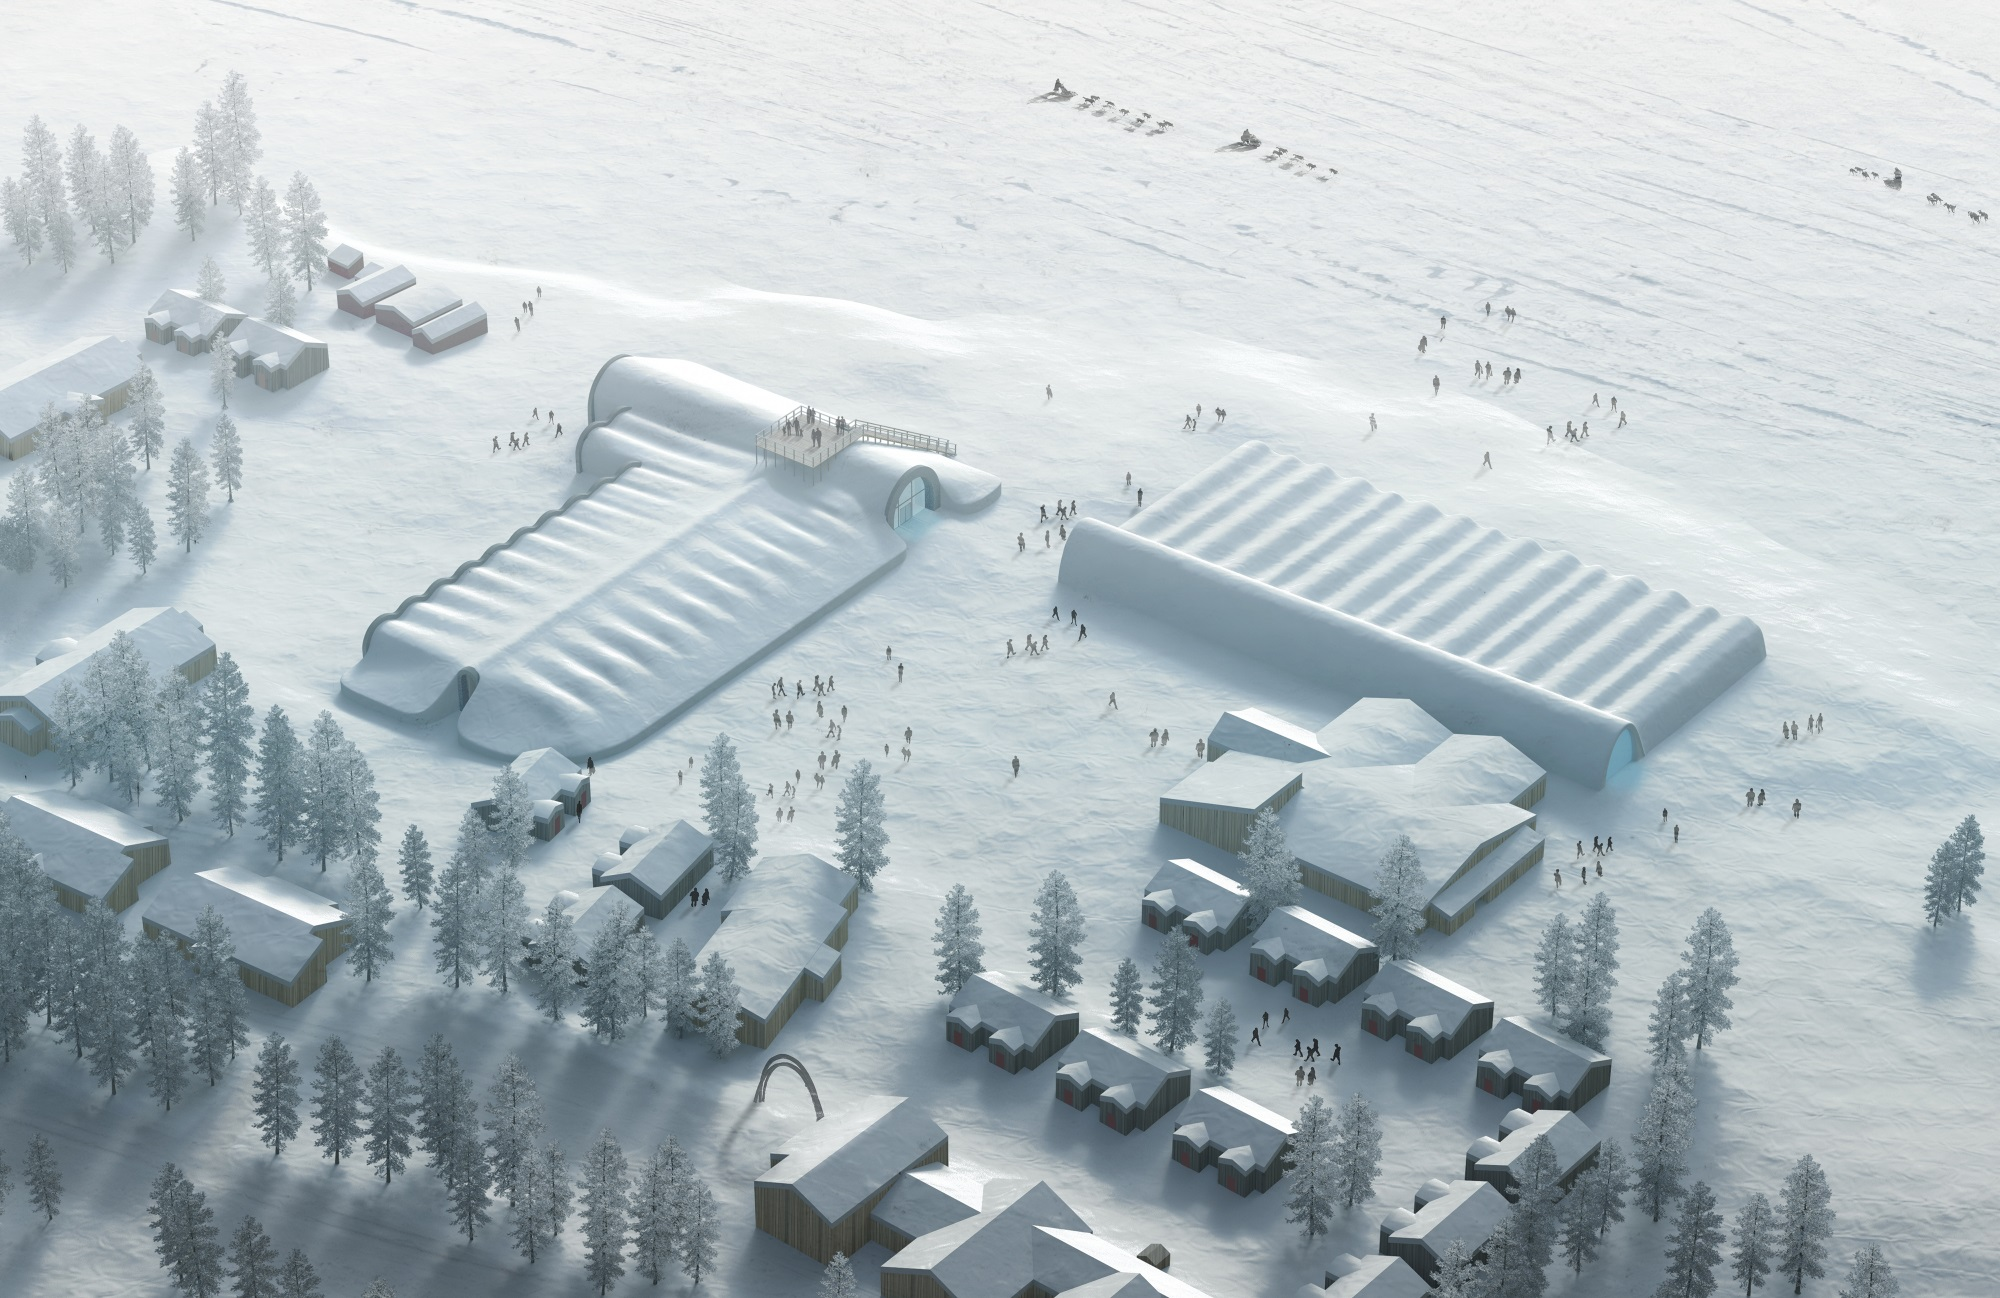 ICEHOTEL 365 Winter. Illustration by PinPin Studio